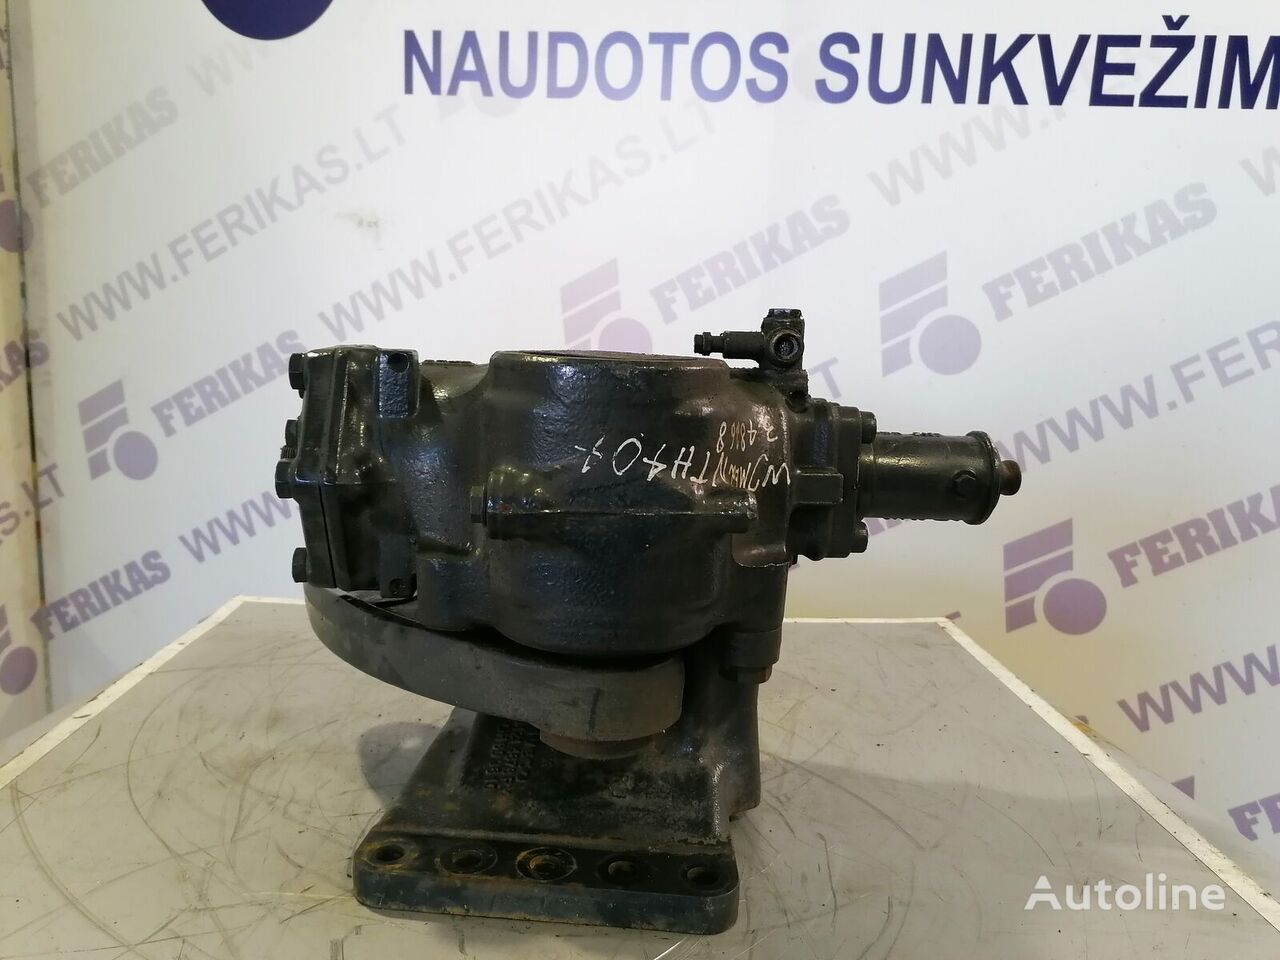 IVECO Stralis steering gear 500346304 41218668 steering gear for tractor unit